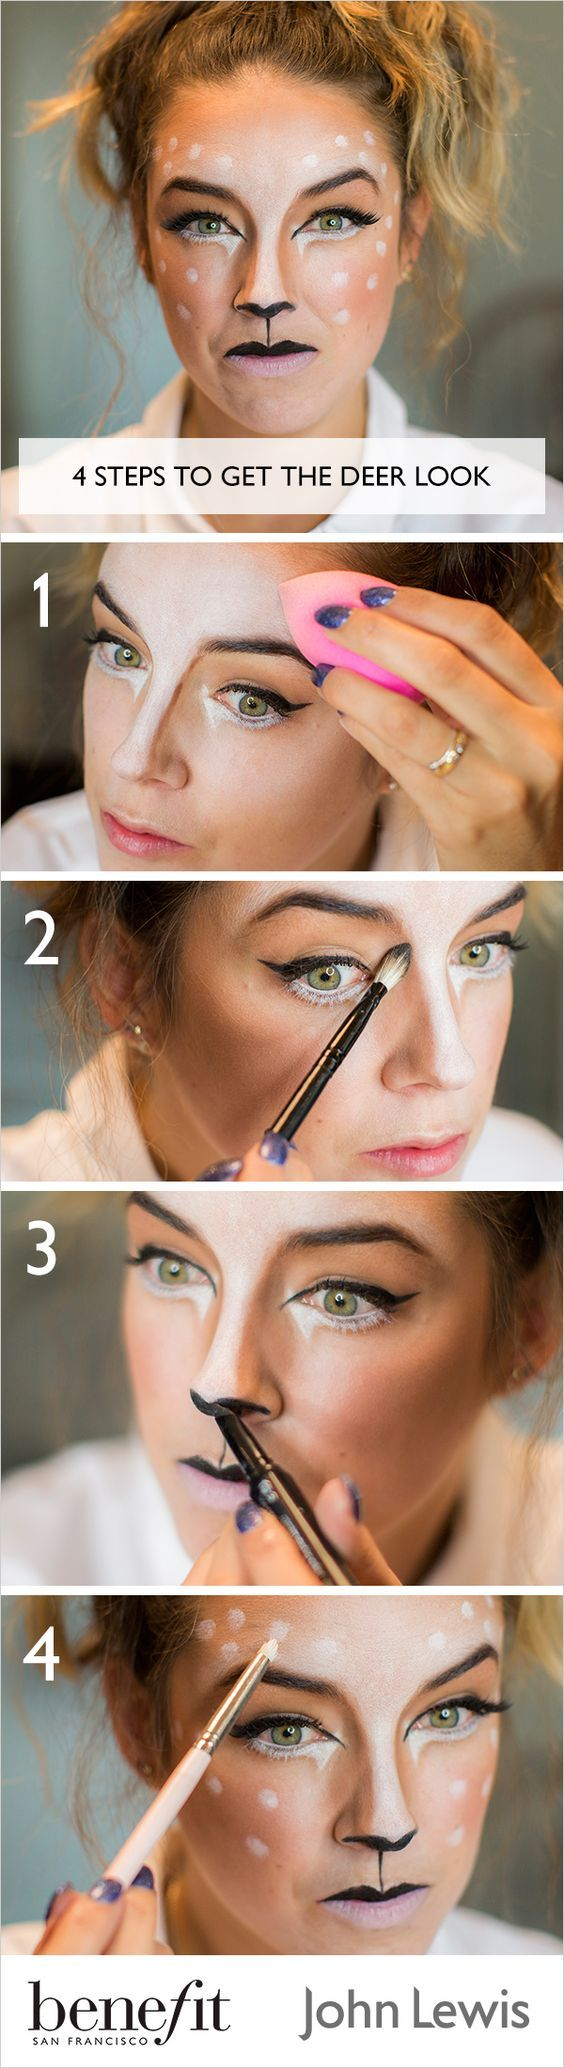 Lisa Potter-Dixon Head Make Up Artist for Benefit Cosmetics, shows us how to recreate a cute deer look this Halloween. Discover full instructions and product details. Beauty & Personal Care : makeup  http://amzn.to/2kWGq9s